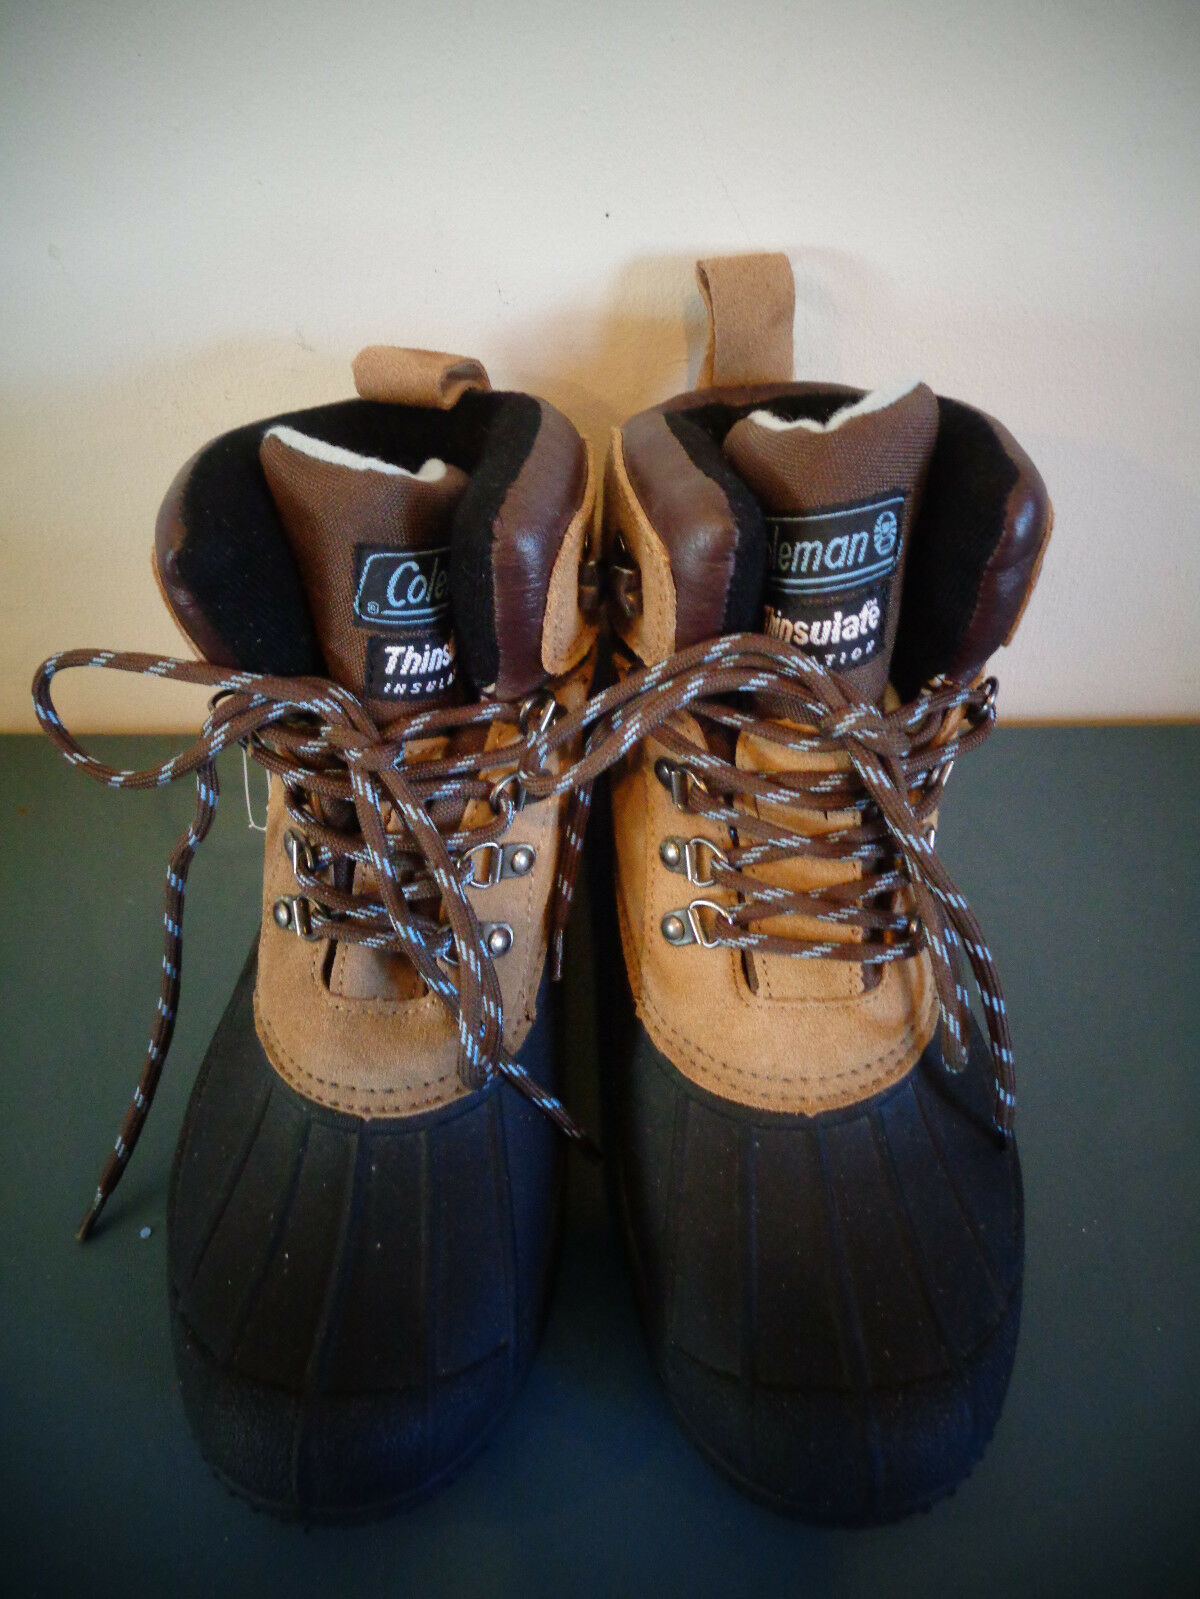 COLEMAN GLACIER LEATHER & RUBBER WOMEN'S SIZE 9 THINSULATE LINED WINTER BOOTS